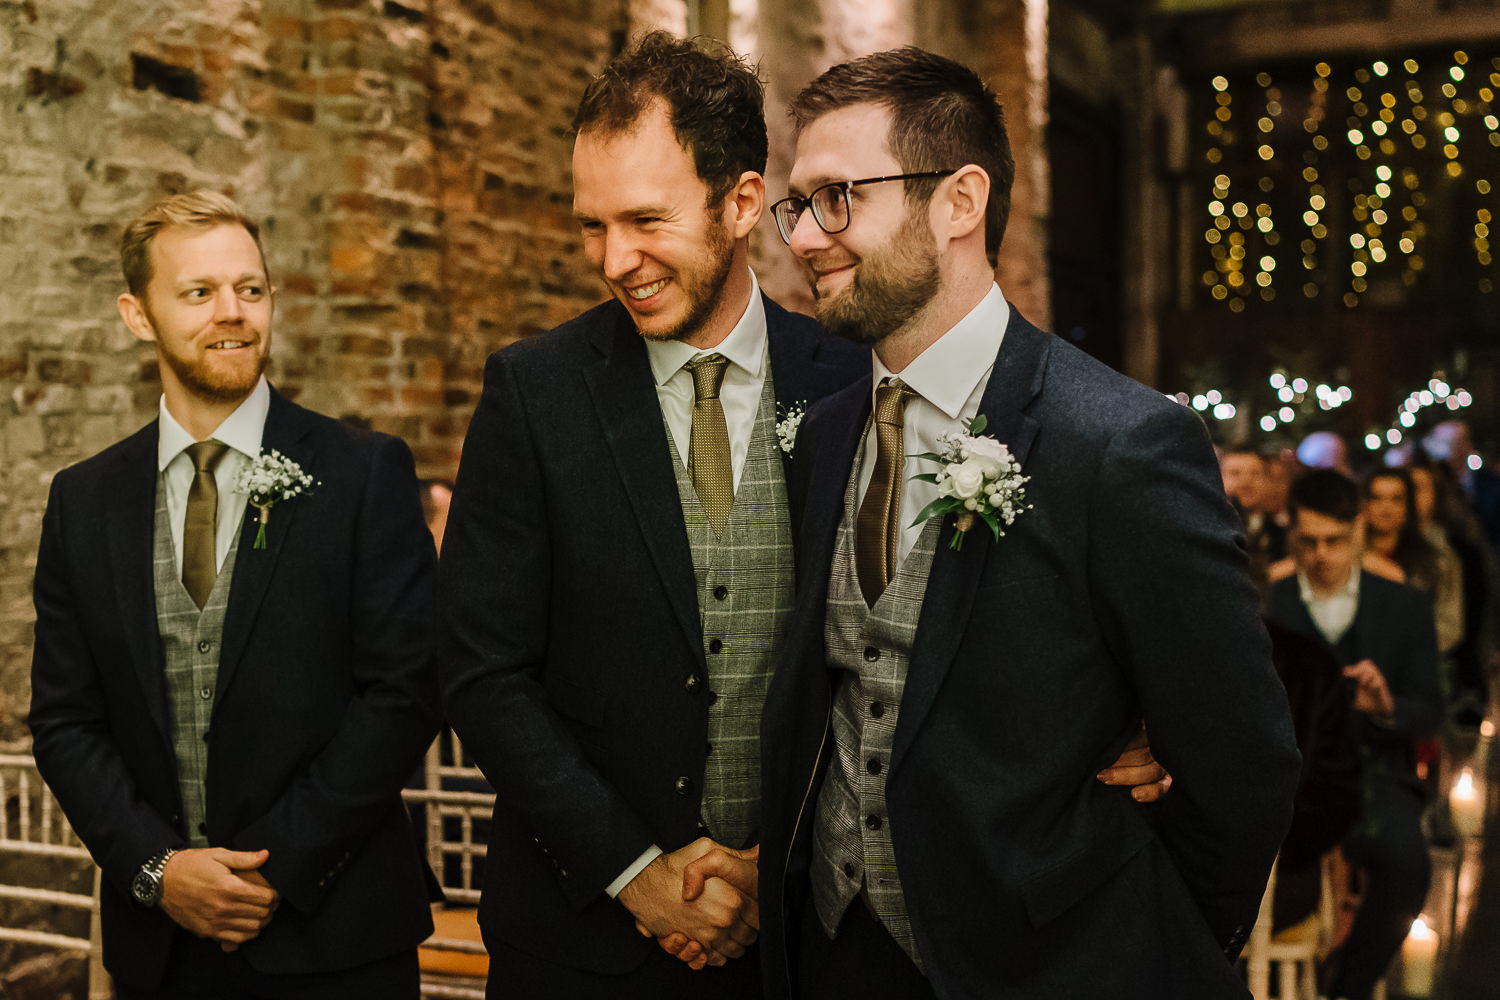 Groom shaking hands with best man